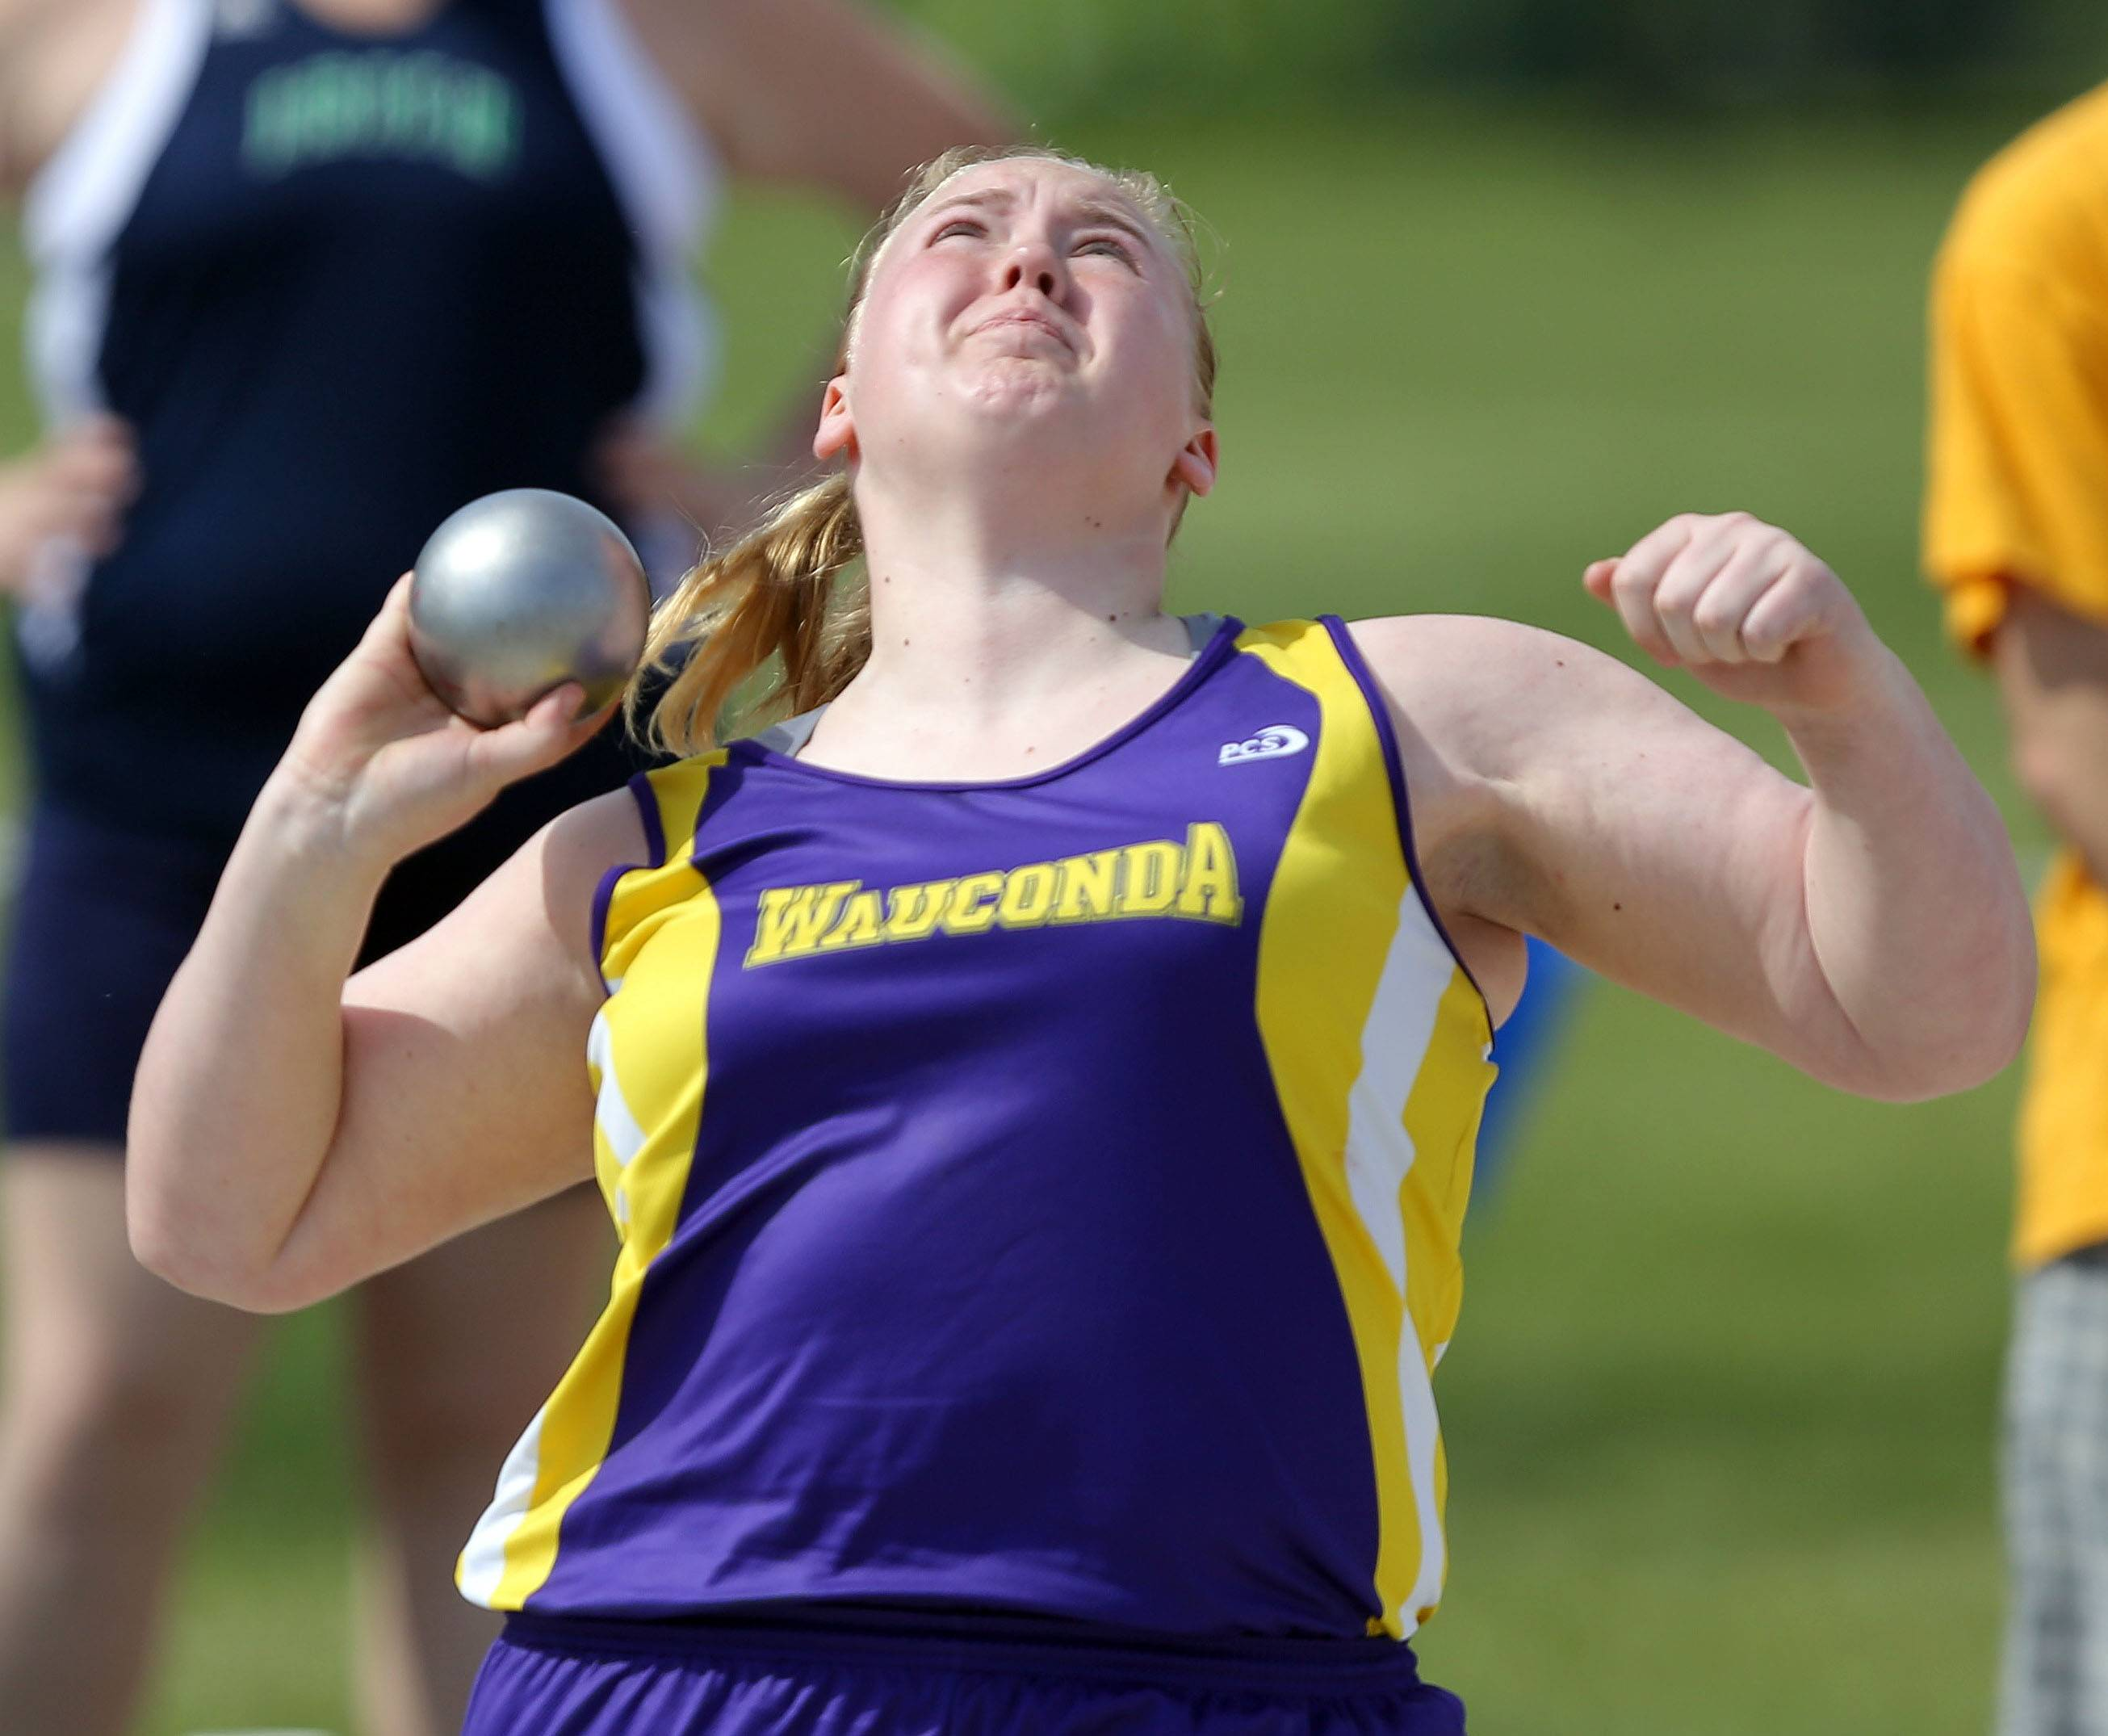 Wauconda's Christina Meinhardt competes in the Class 2A shot put during the girls track and field state finals at Eastern Illinois University in Charleston on Saturday.